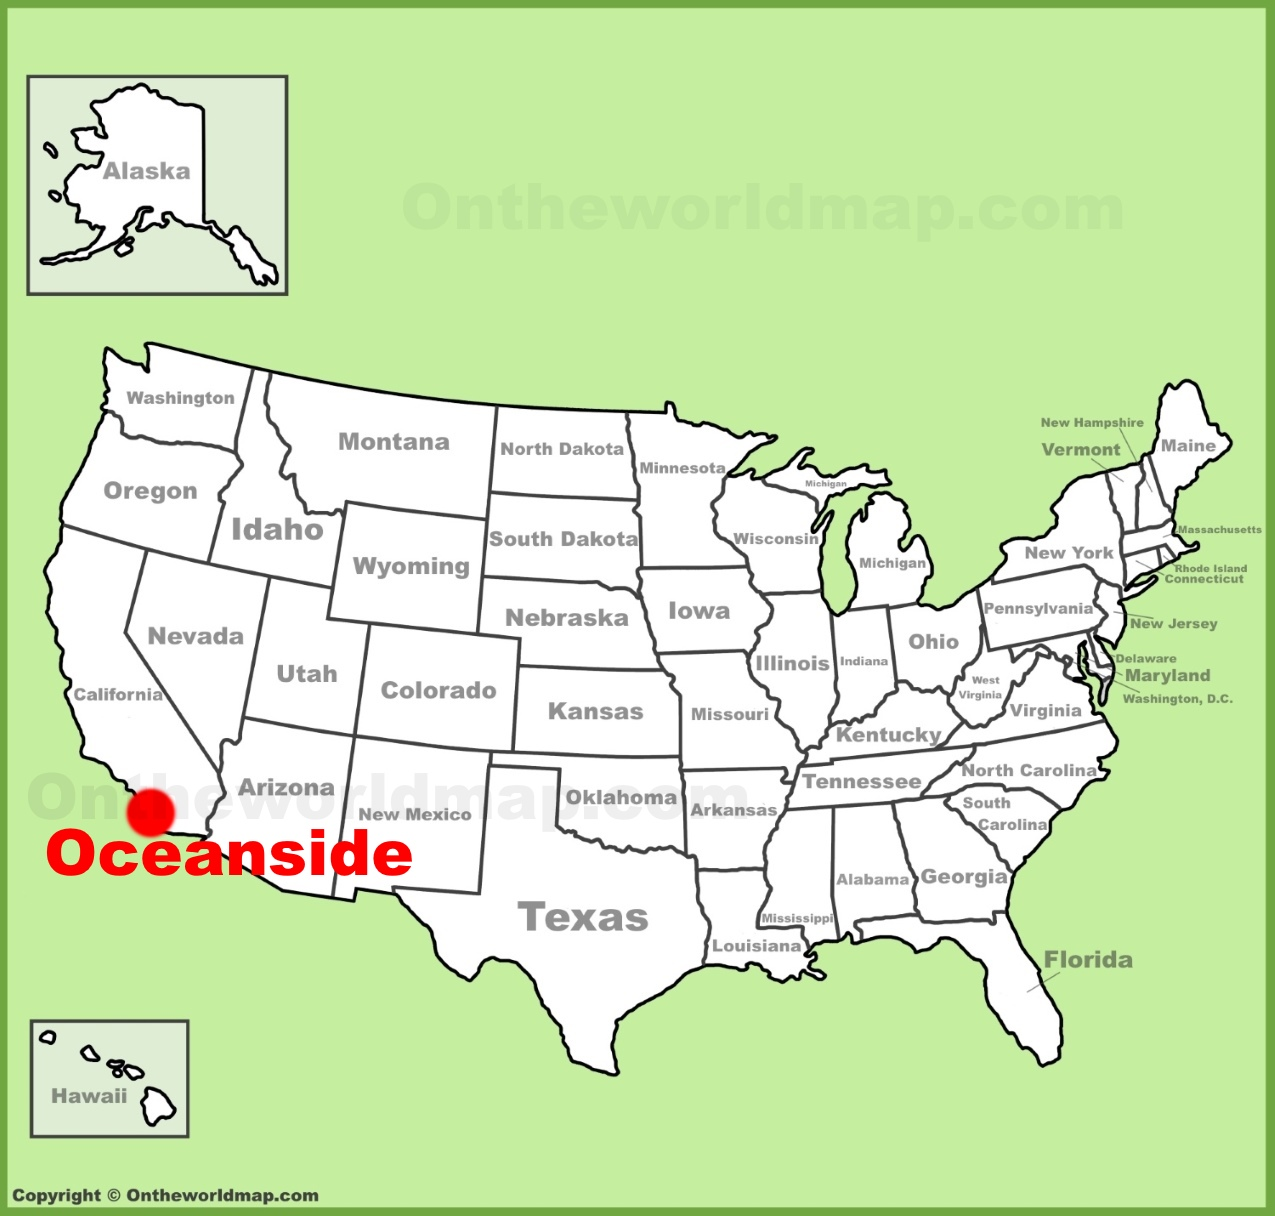 Oceanside location on the US Map